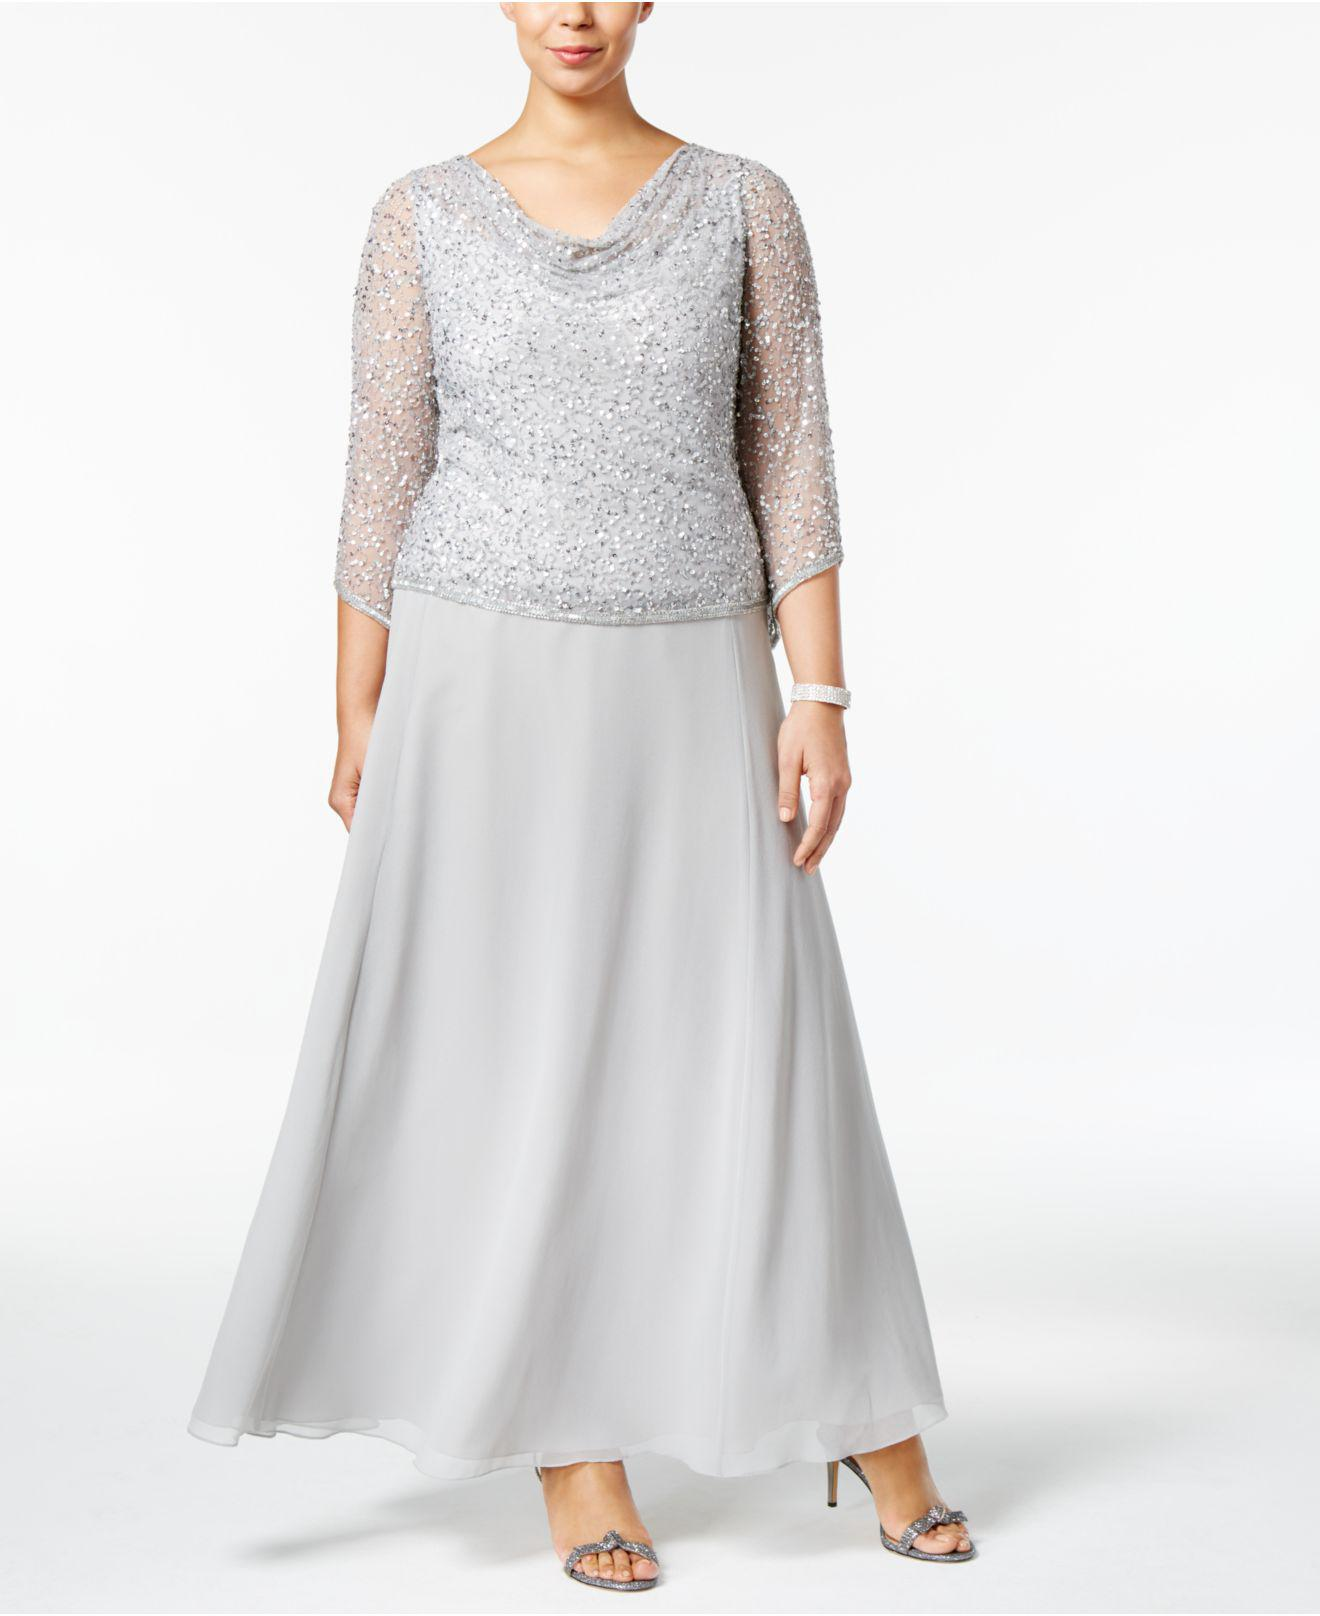 J kara Plus Size Draped Sequined Gown in Metallic | Lyst